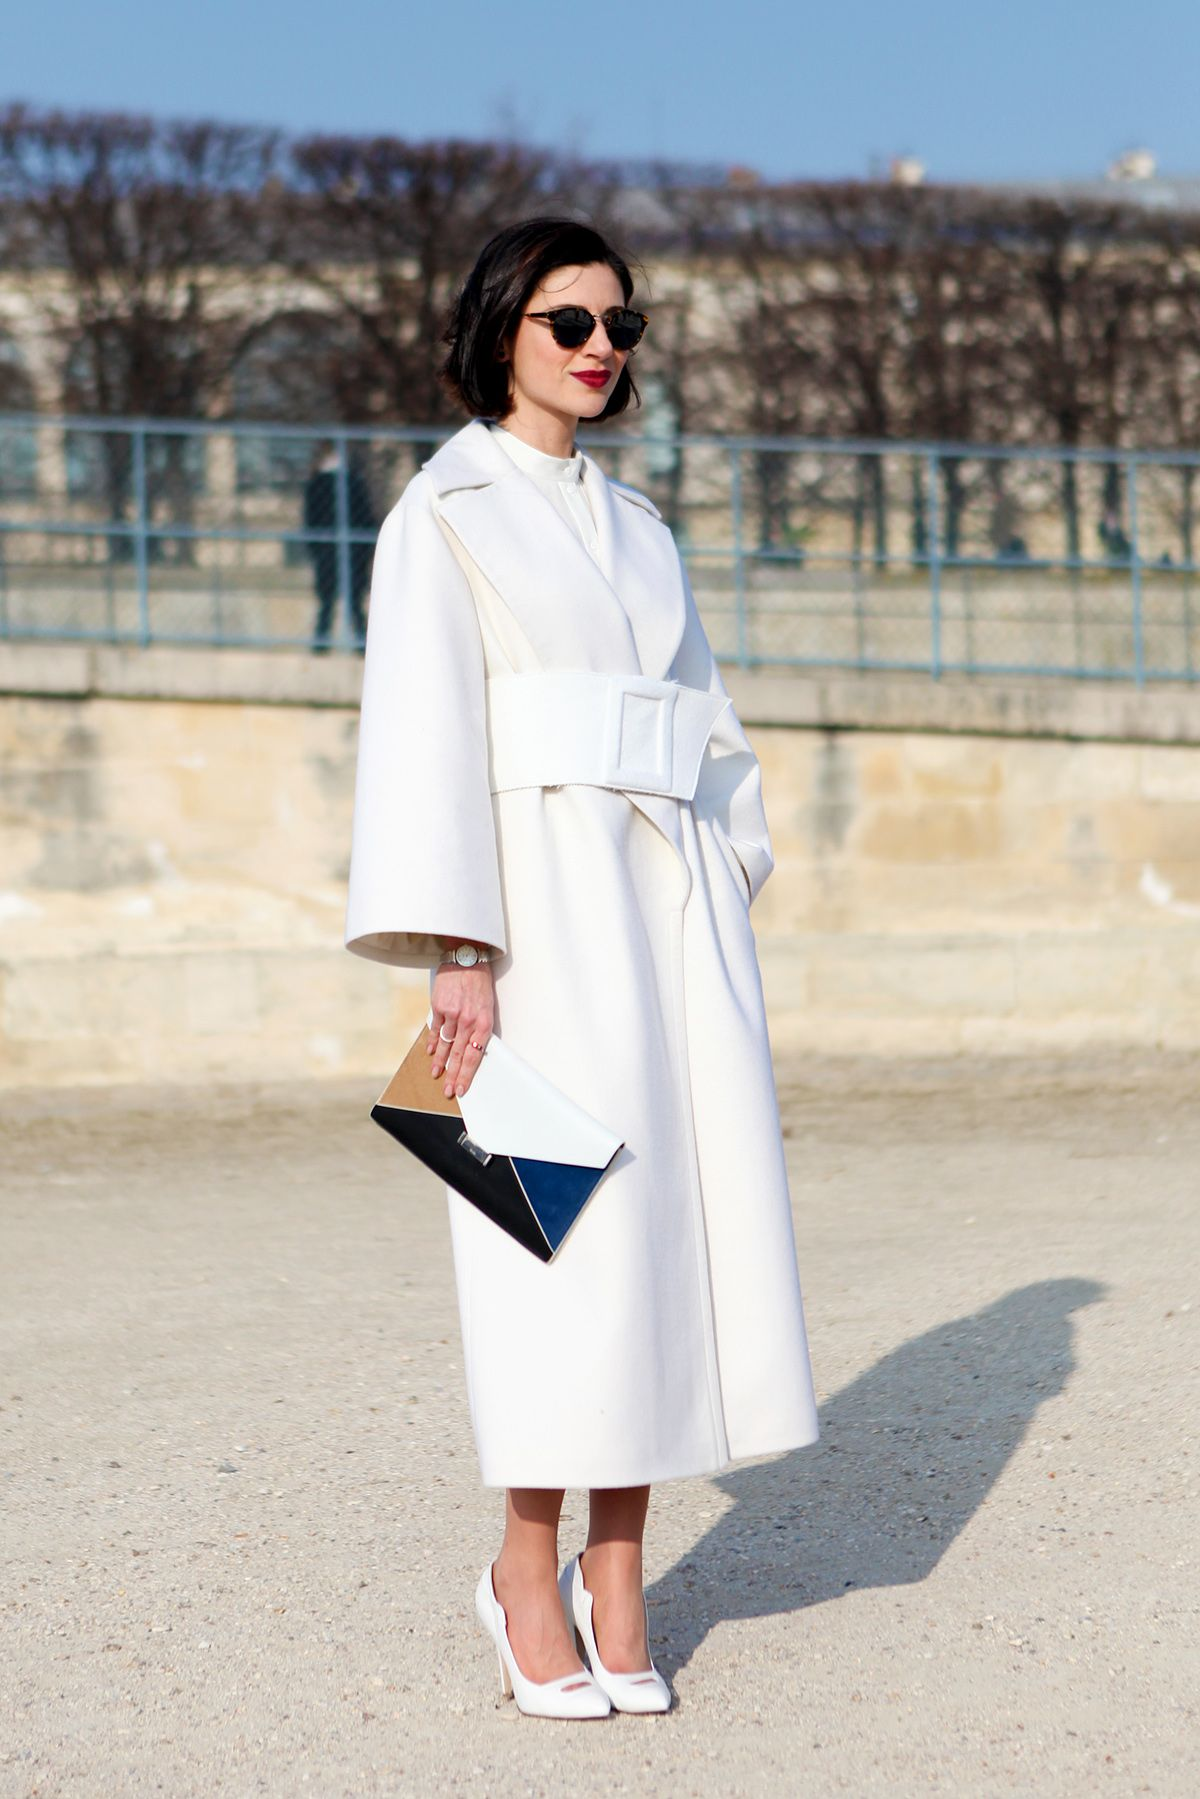 Streetstyle - Get the look: Structured white coat, white collarless shirt,  tortoiseshell sunglasses, Celine envelope clutch (alternative here) and  white ...